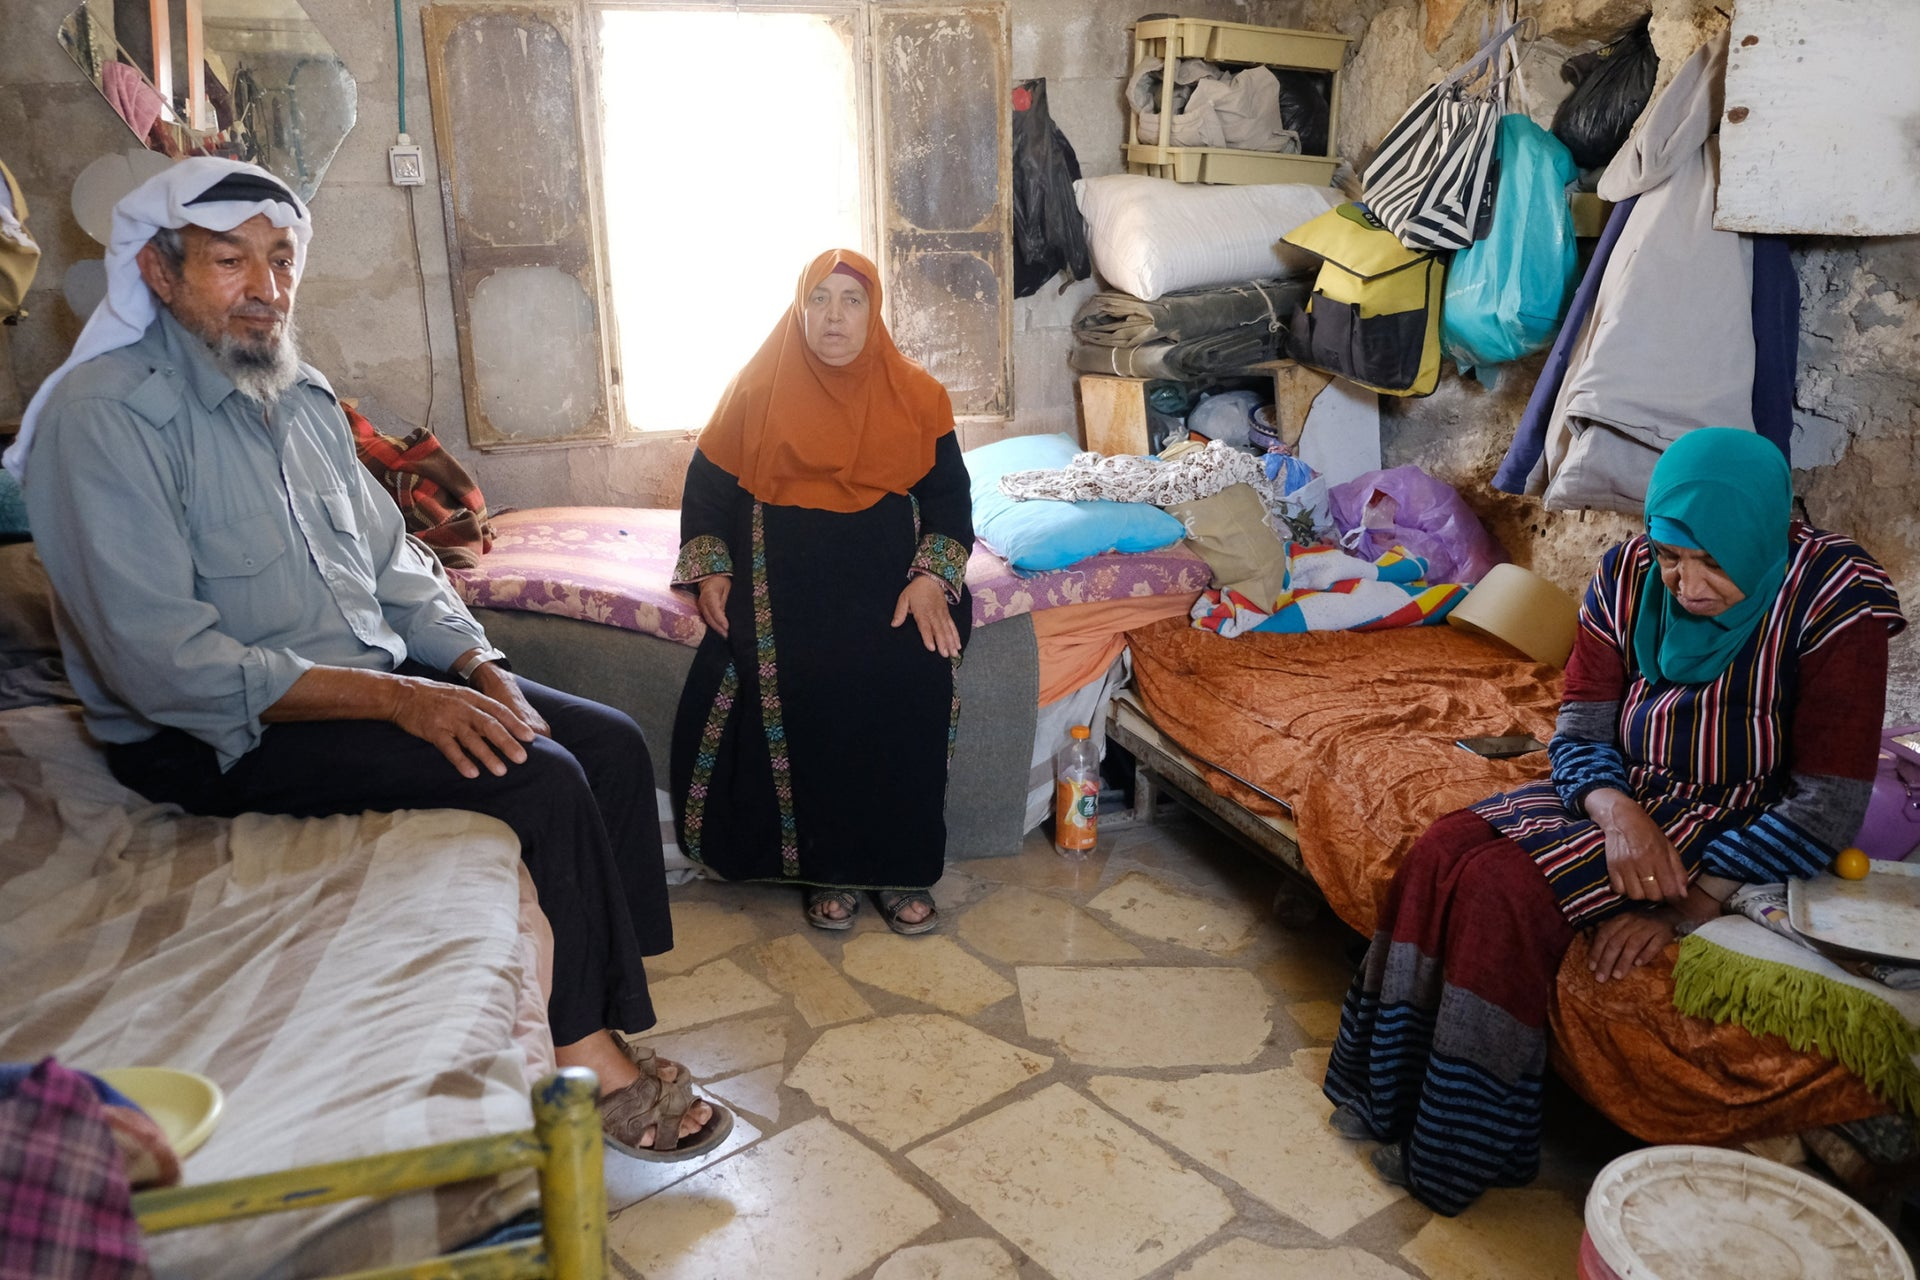 Umm al-Shukkhan is home to three: Ahmad Hamamdi, a farmer with a hearing aid; Halimi, his wife, 67; and her mentally disabled sister, Zarifi, 52.